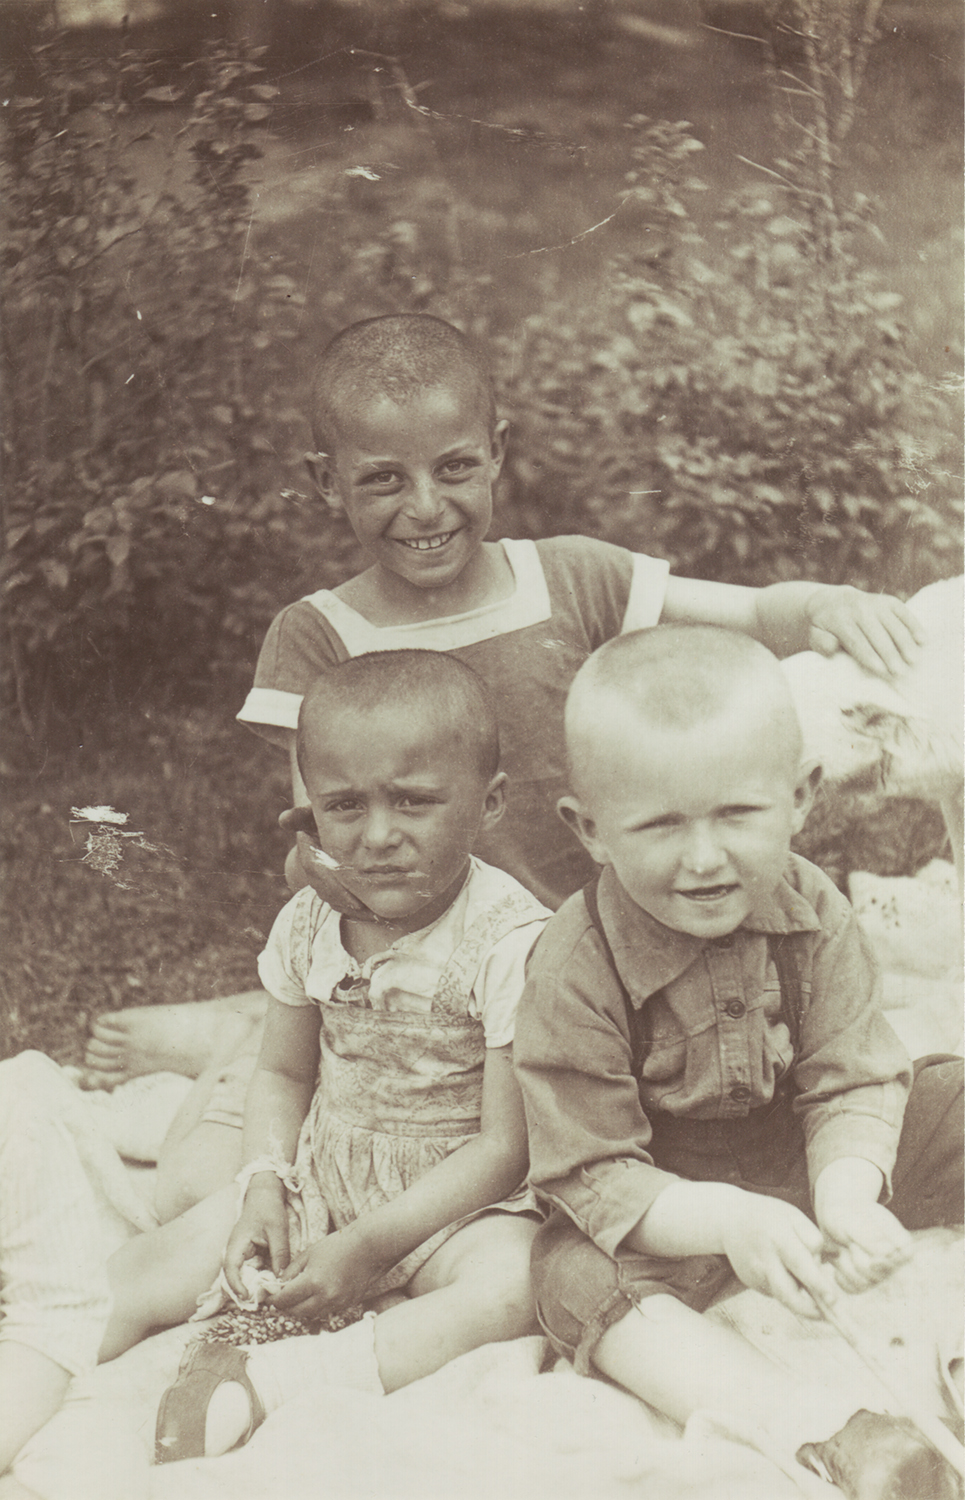 Leonid Rozenberg (on left) with his cousins Irina and Emmanuel (brother and sister).  1936.